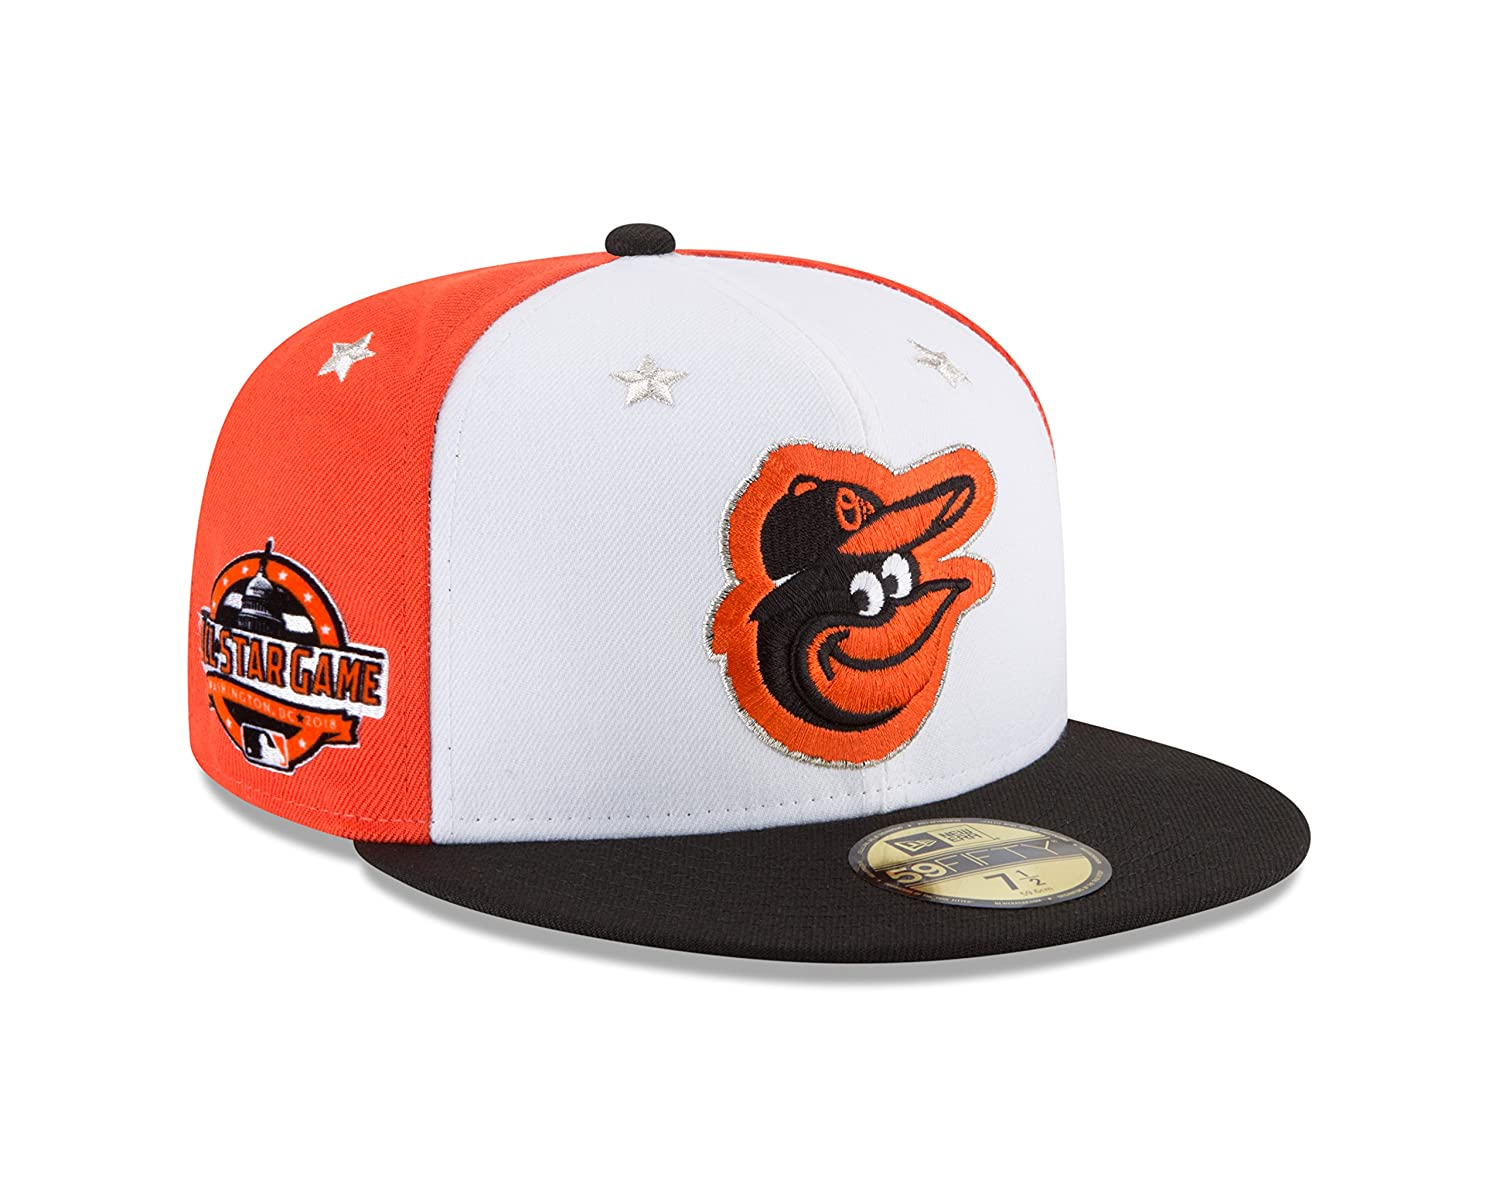 efea60e00ad Amazon.com   New Era Baltimore Orioles 2018 MLB All-Star Game On-Field  59FIFTY Fitted Hat - White Black   Sports   Outdoors